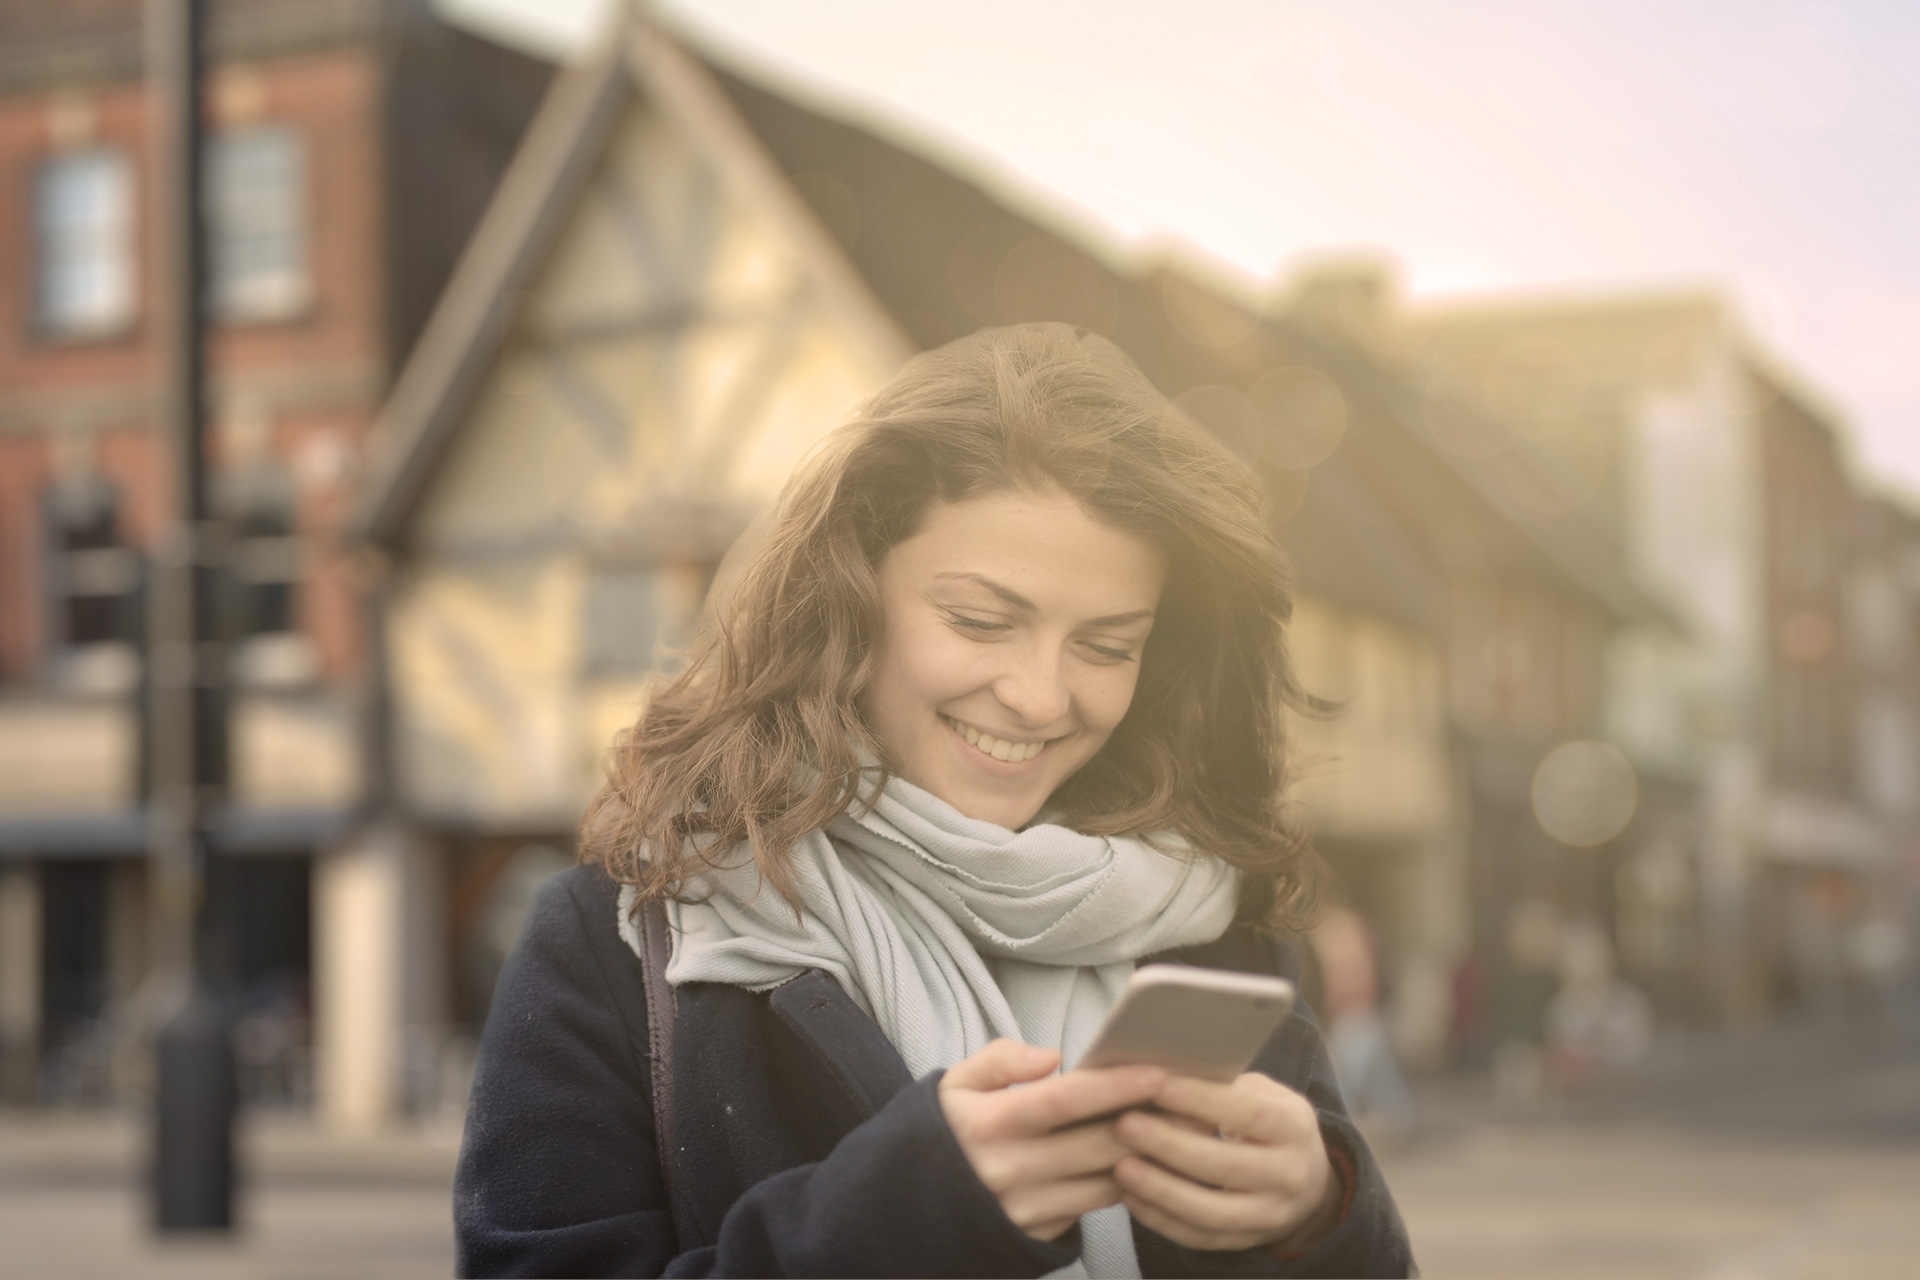 A white woman with long curly brown hair, wears a pale blue scarf and smiles while looking at her phone as she explores Salisbury